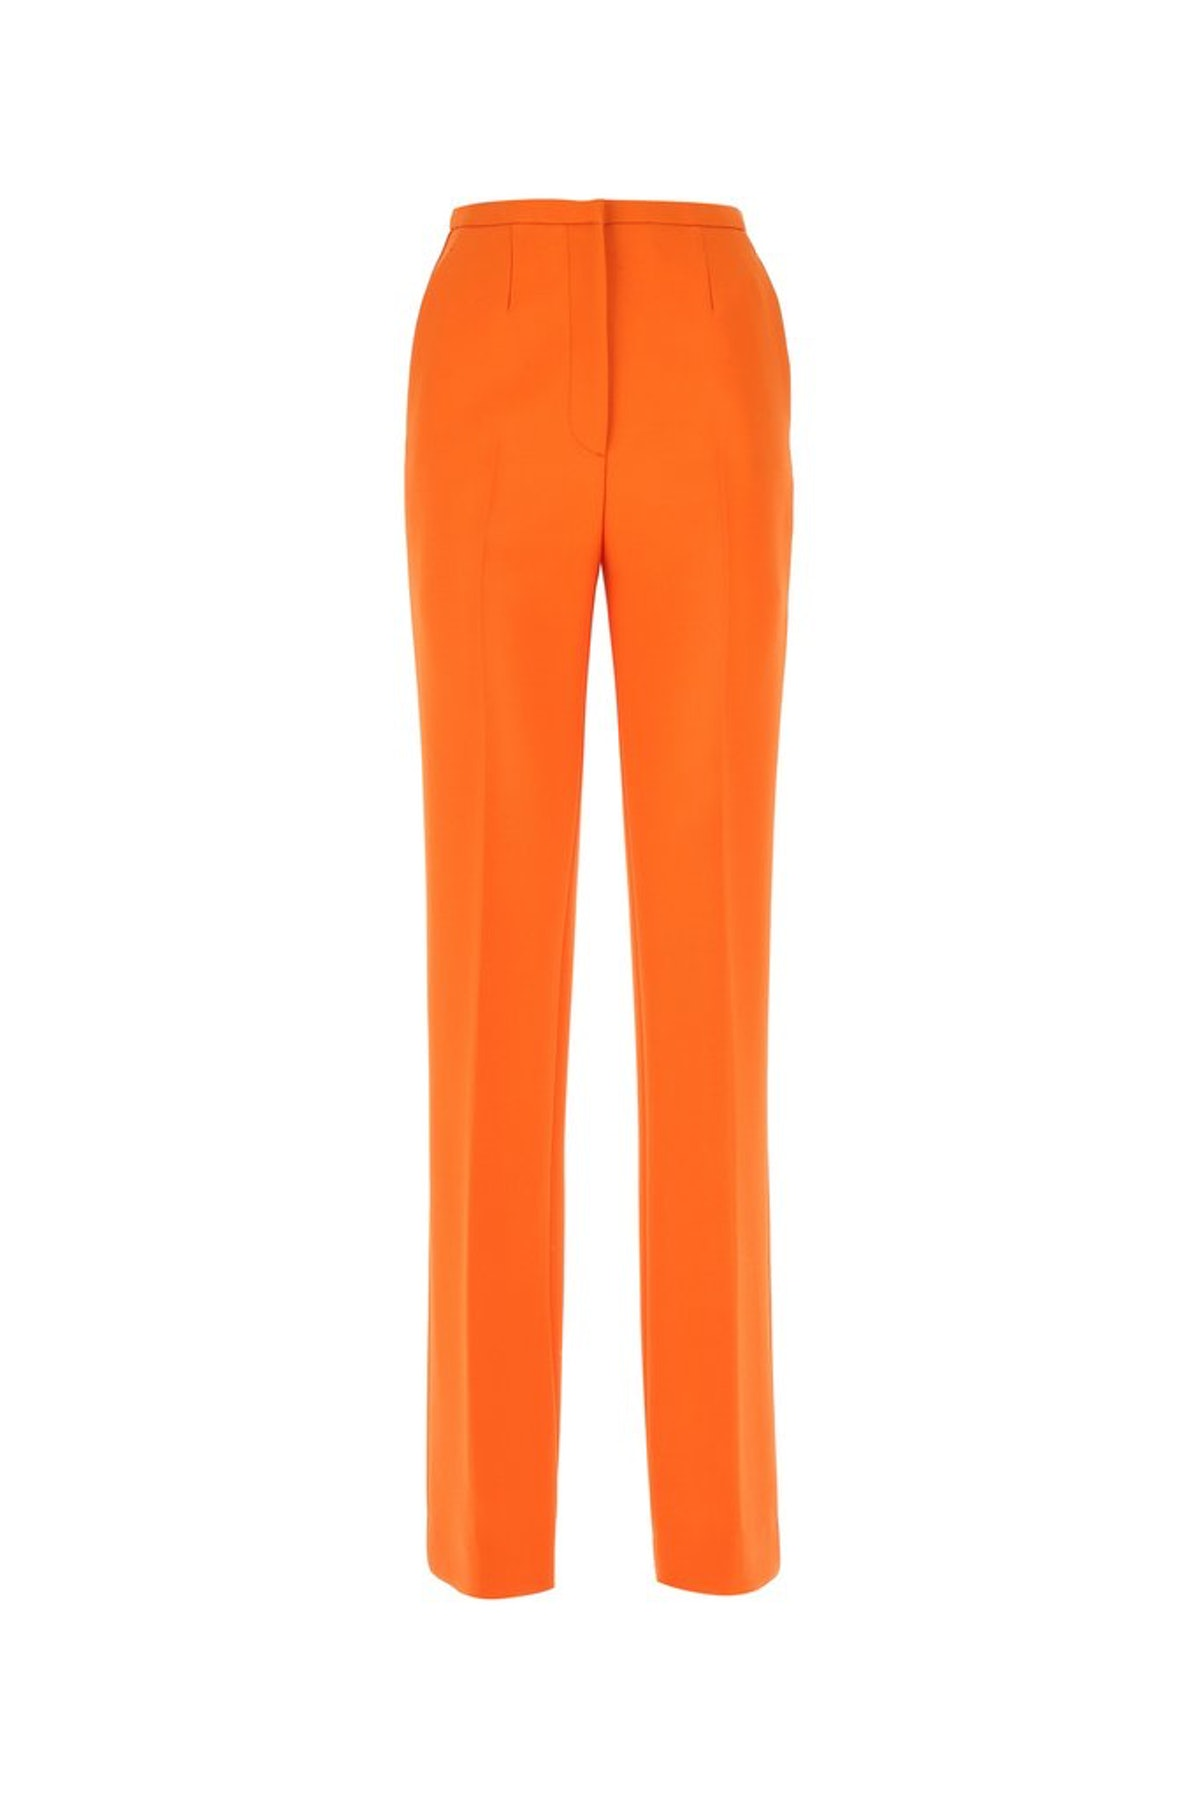 Orange tailored Palazzo pants from Prada, available to shop on Cettire.